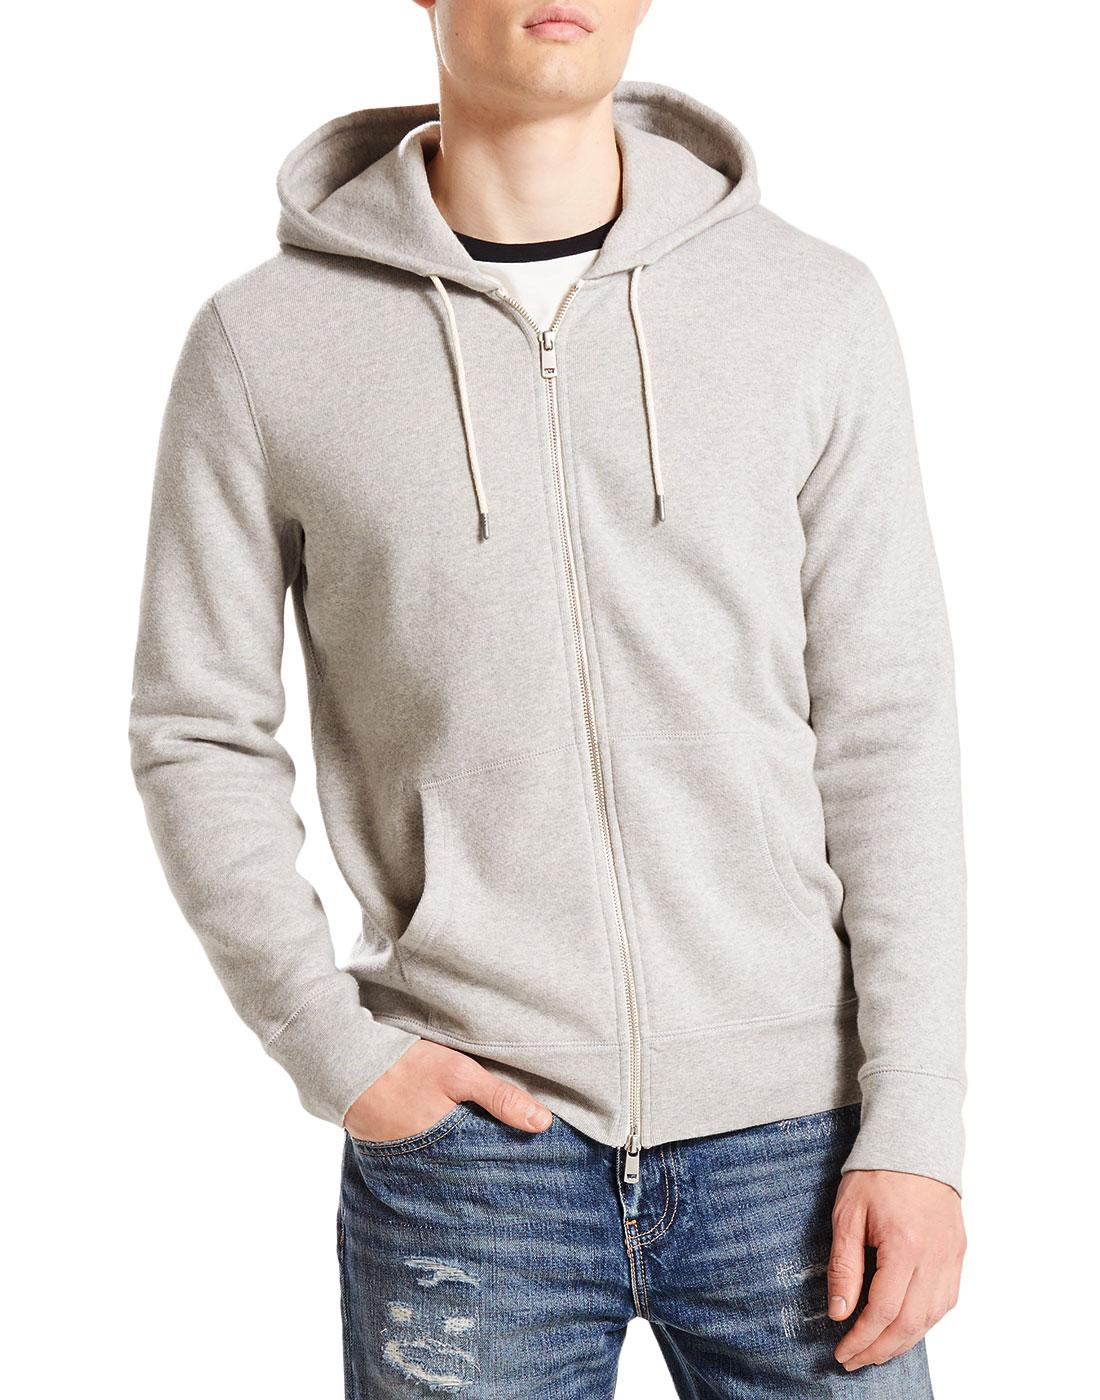 LEVI'S Men's Retro 70s Original Zip Up Hoodie GREY